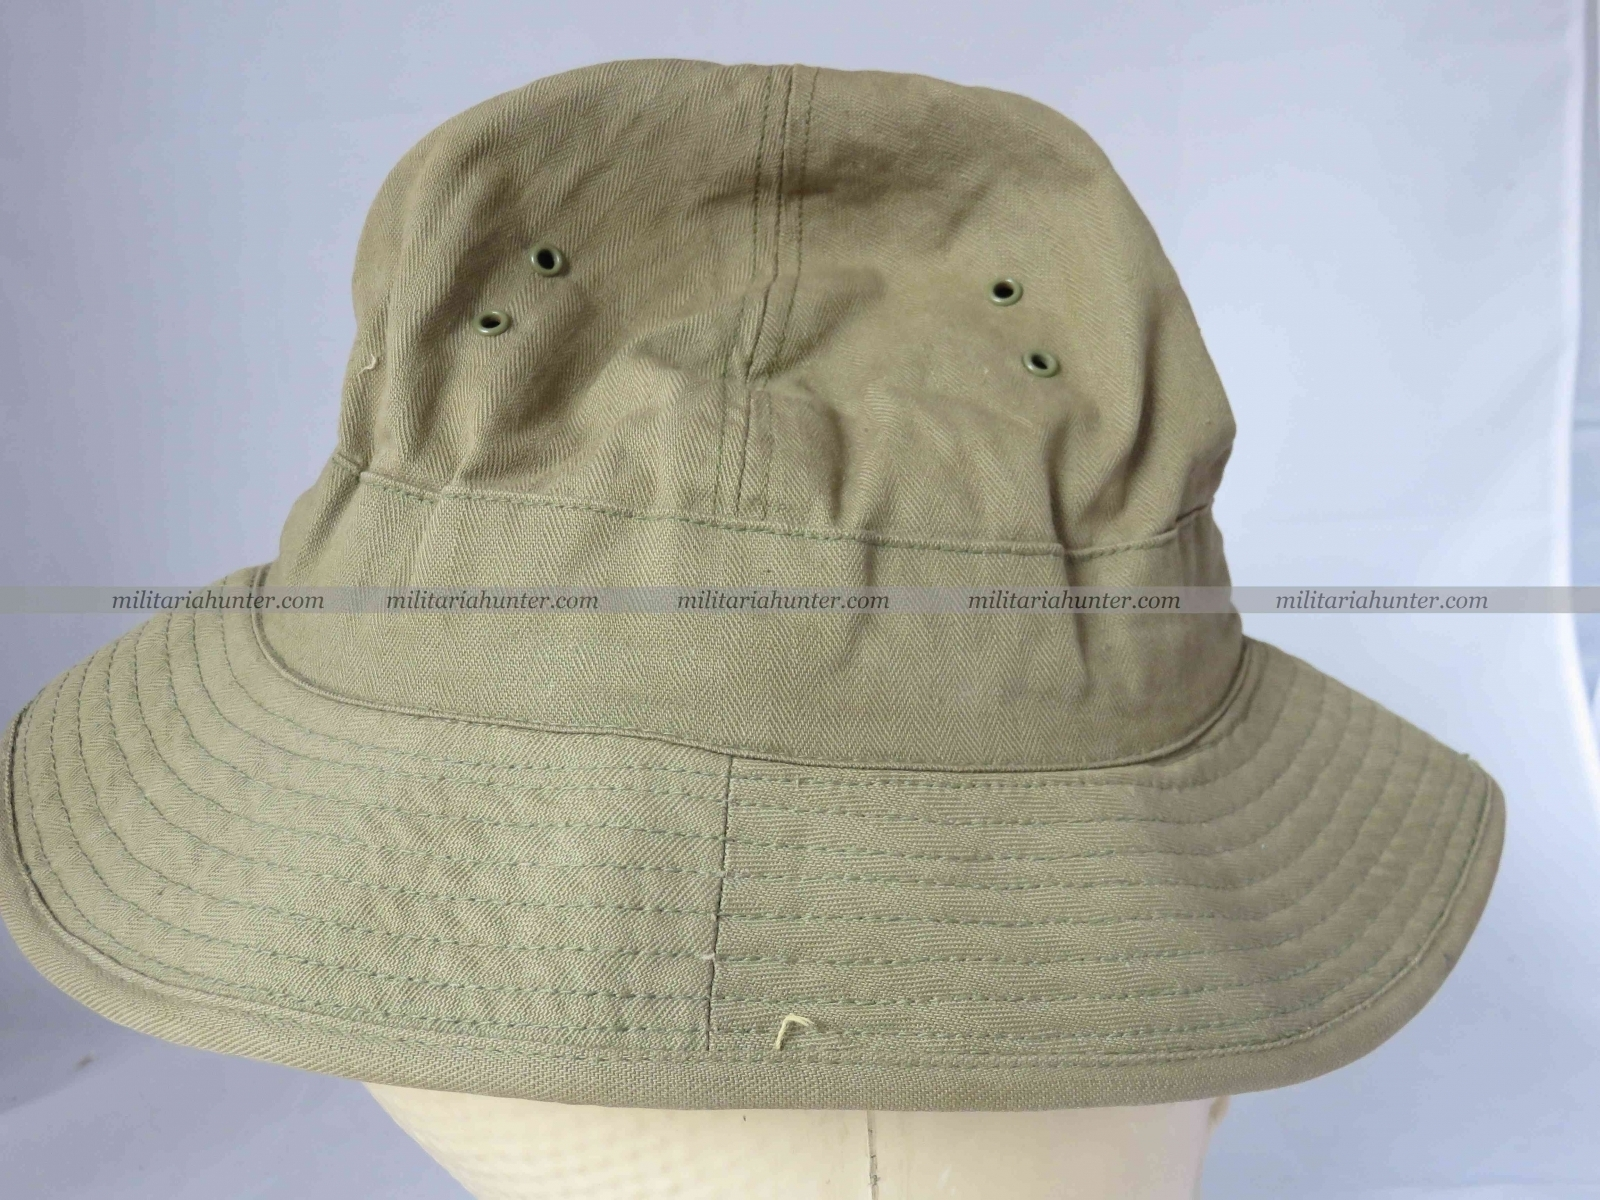 militaria : ON HOLD Us ww2 HBT Boonie Hat / Jungle Hat with laundry number